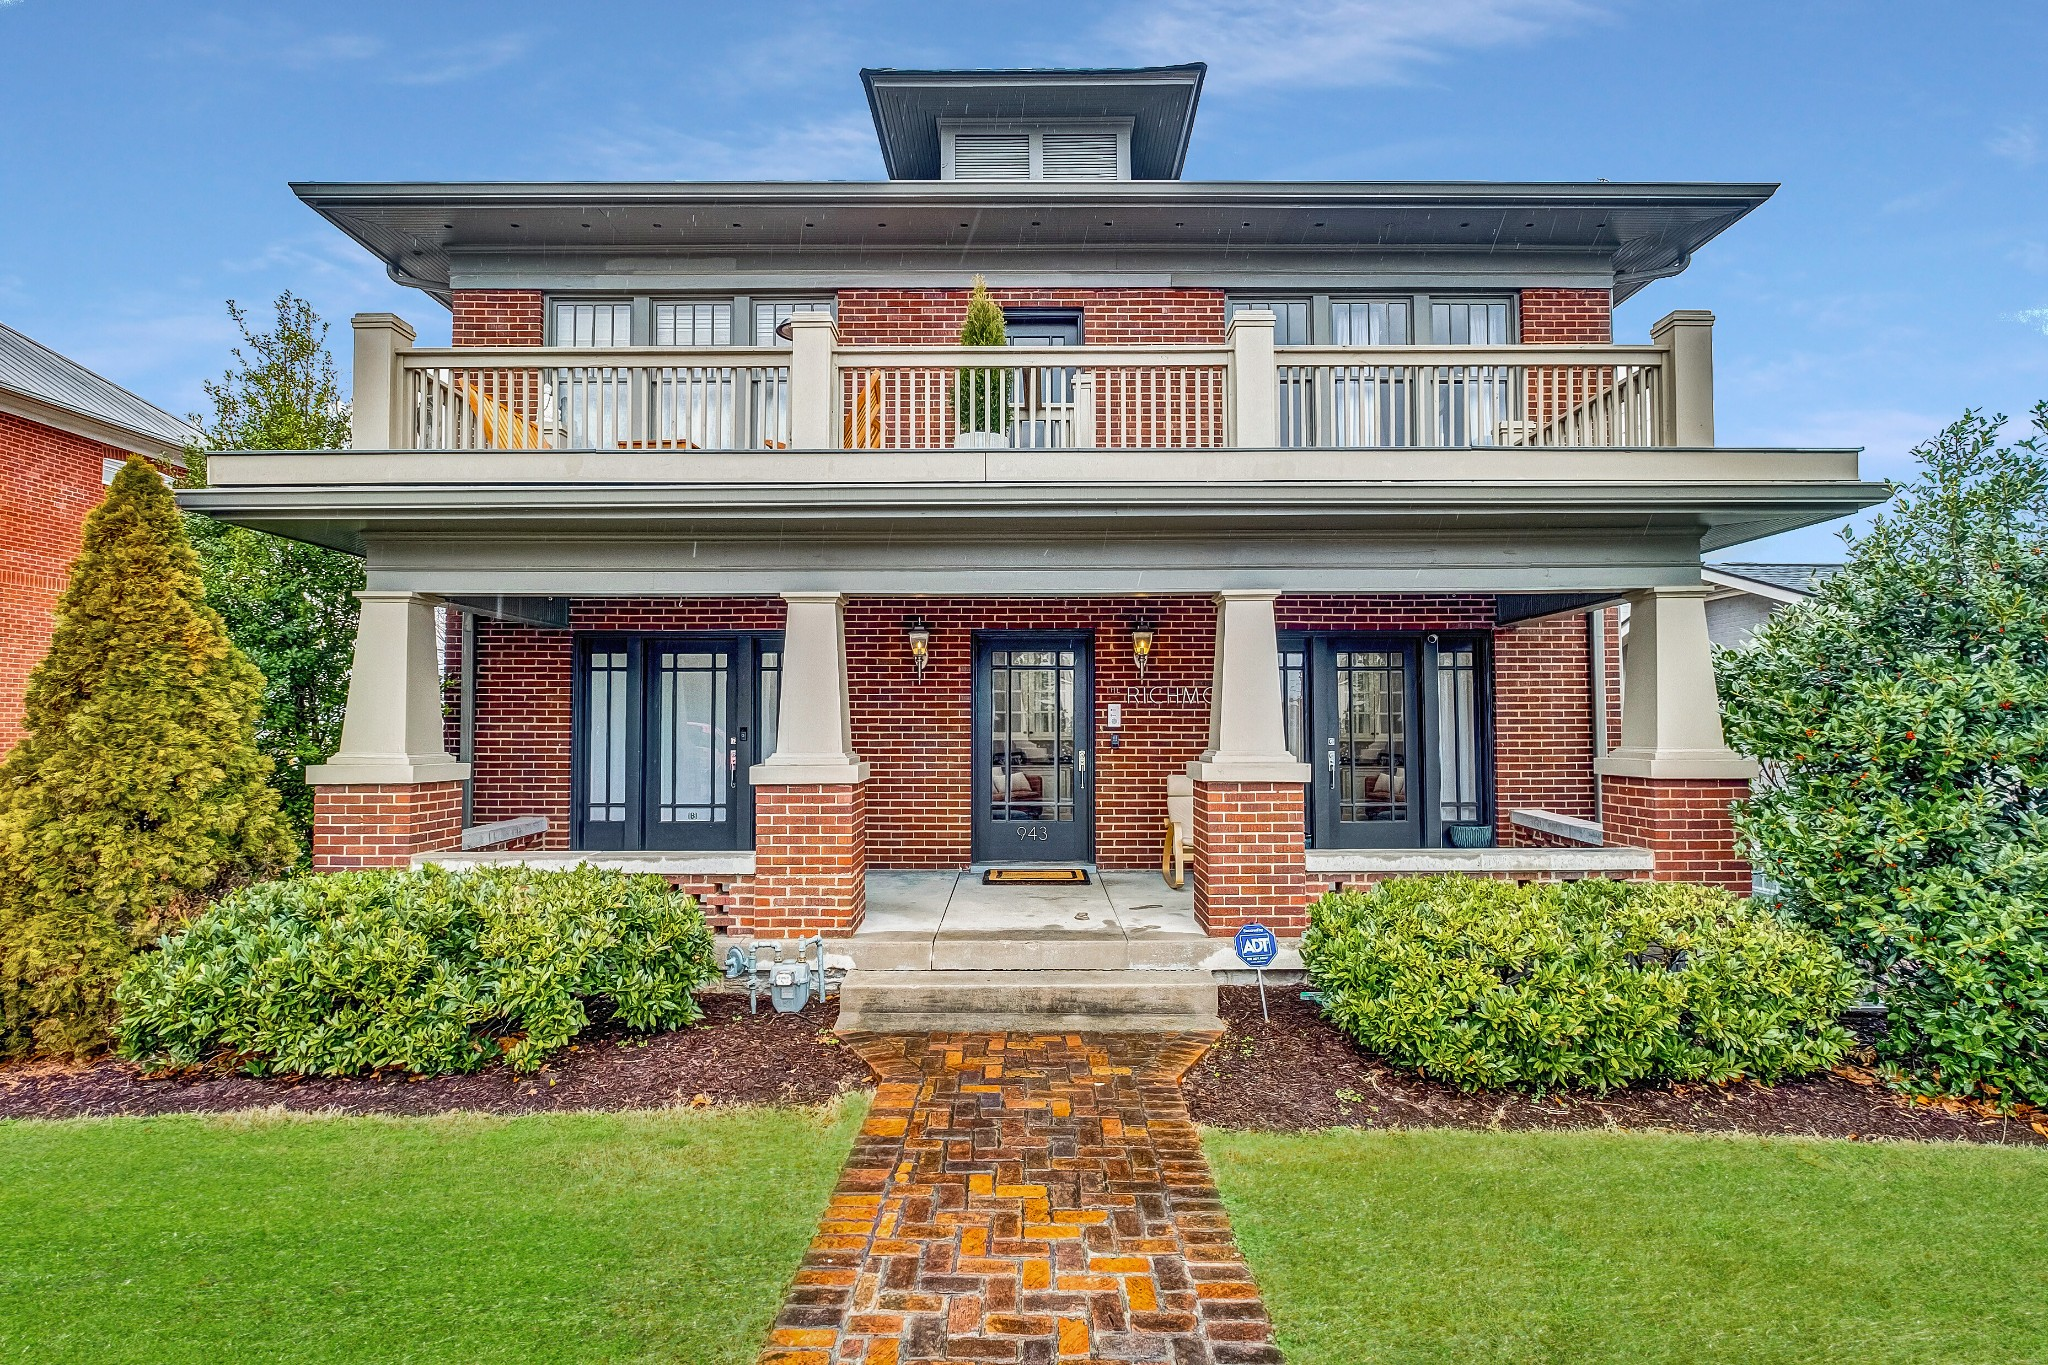 (P) This renovated 1925 brick beauty in the heart of East Nashville comes fully equipped with high ceilings, hardwood floors and a chefs kitchen for the newly relocated Bachelor or Bachelorette to enjoy. Unbeatable charm and location just steps to all East Nashville has to offer. Come see it for yourself.